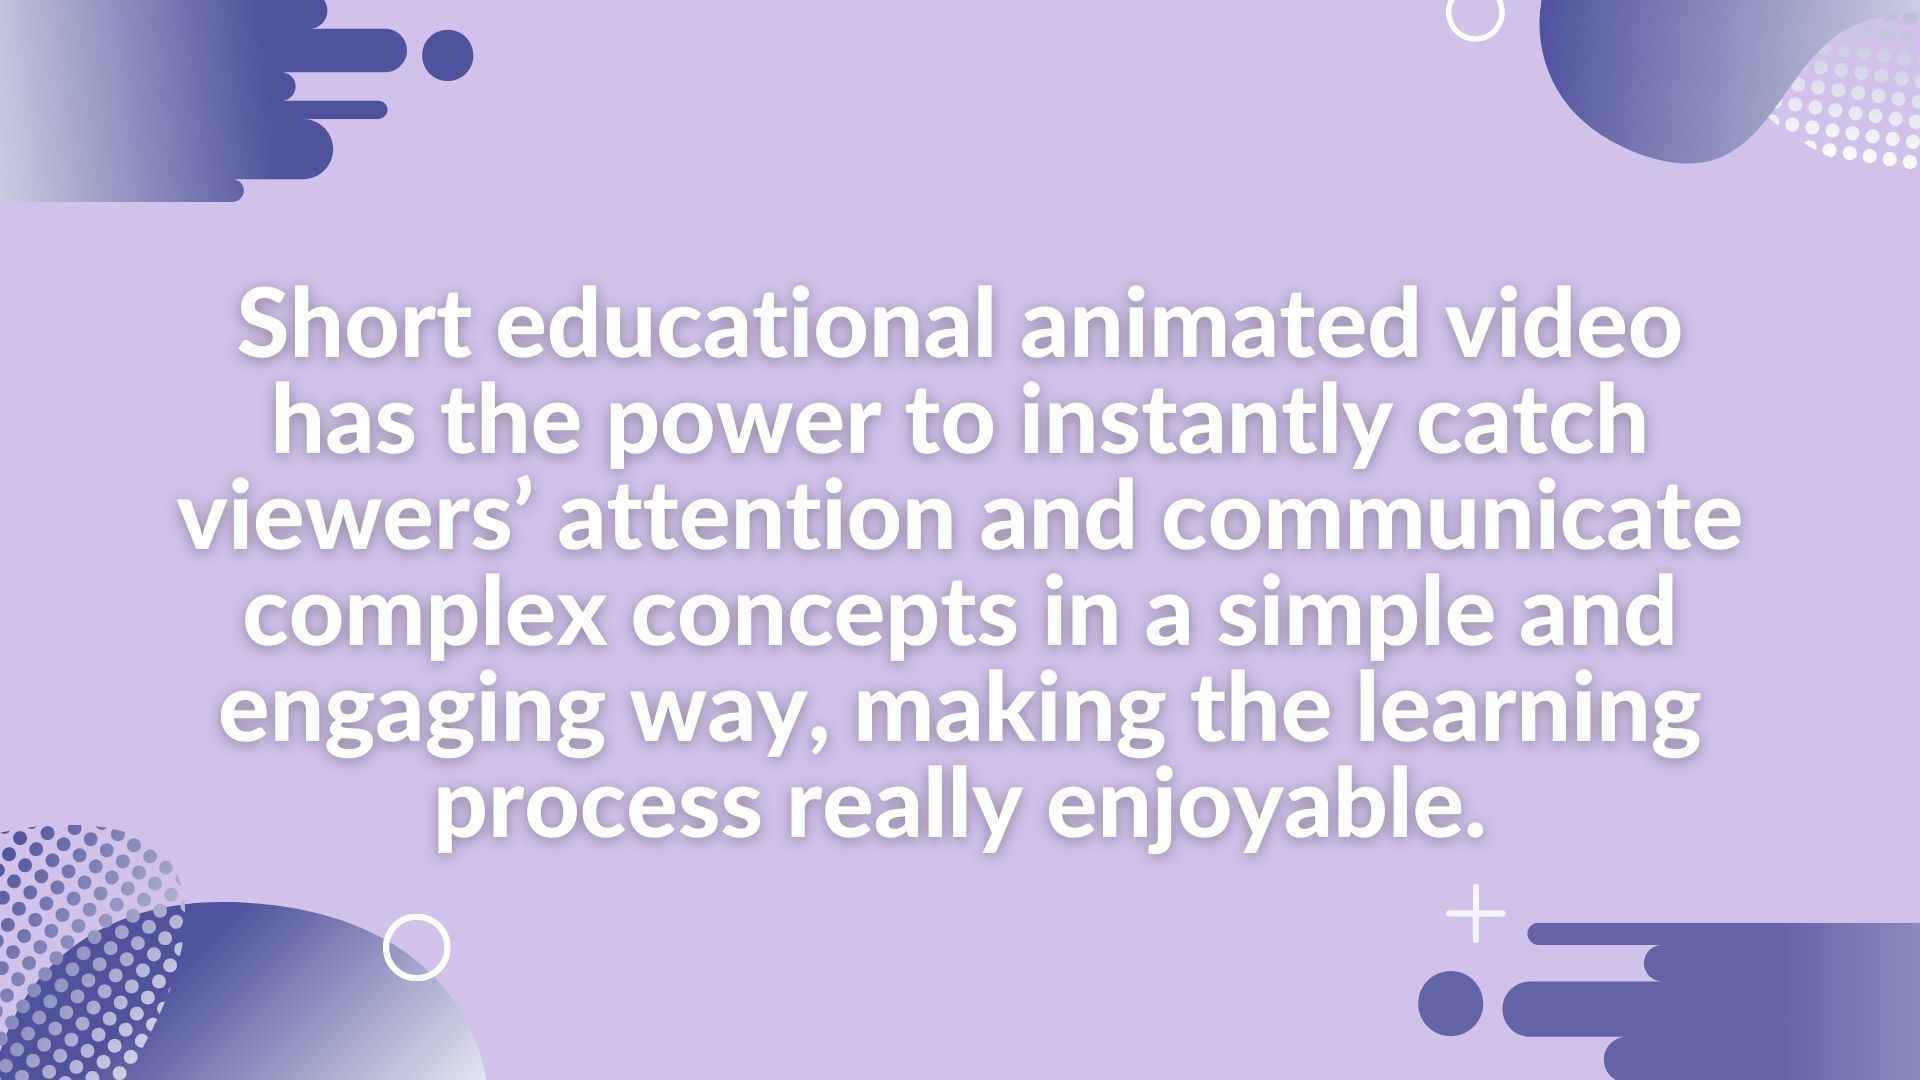 Use animated video effectively in teaching